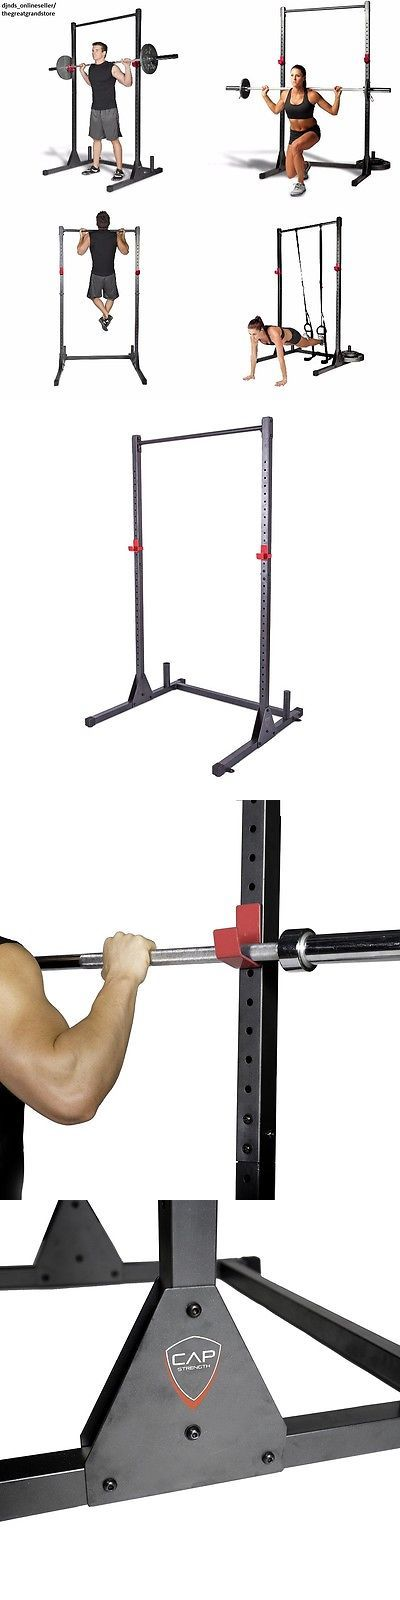 Pull Up Bars 179816: Pull Up Bar Power Rack Squat Stand Cage Exercise Indoor Home Gym Workout Fitness -> BUY IT NOW ONLY: $164.5 on eBay!